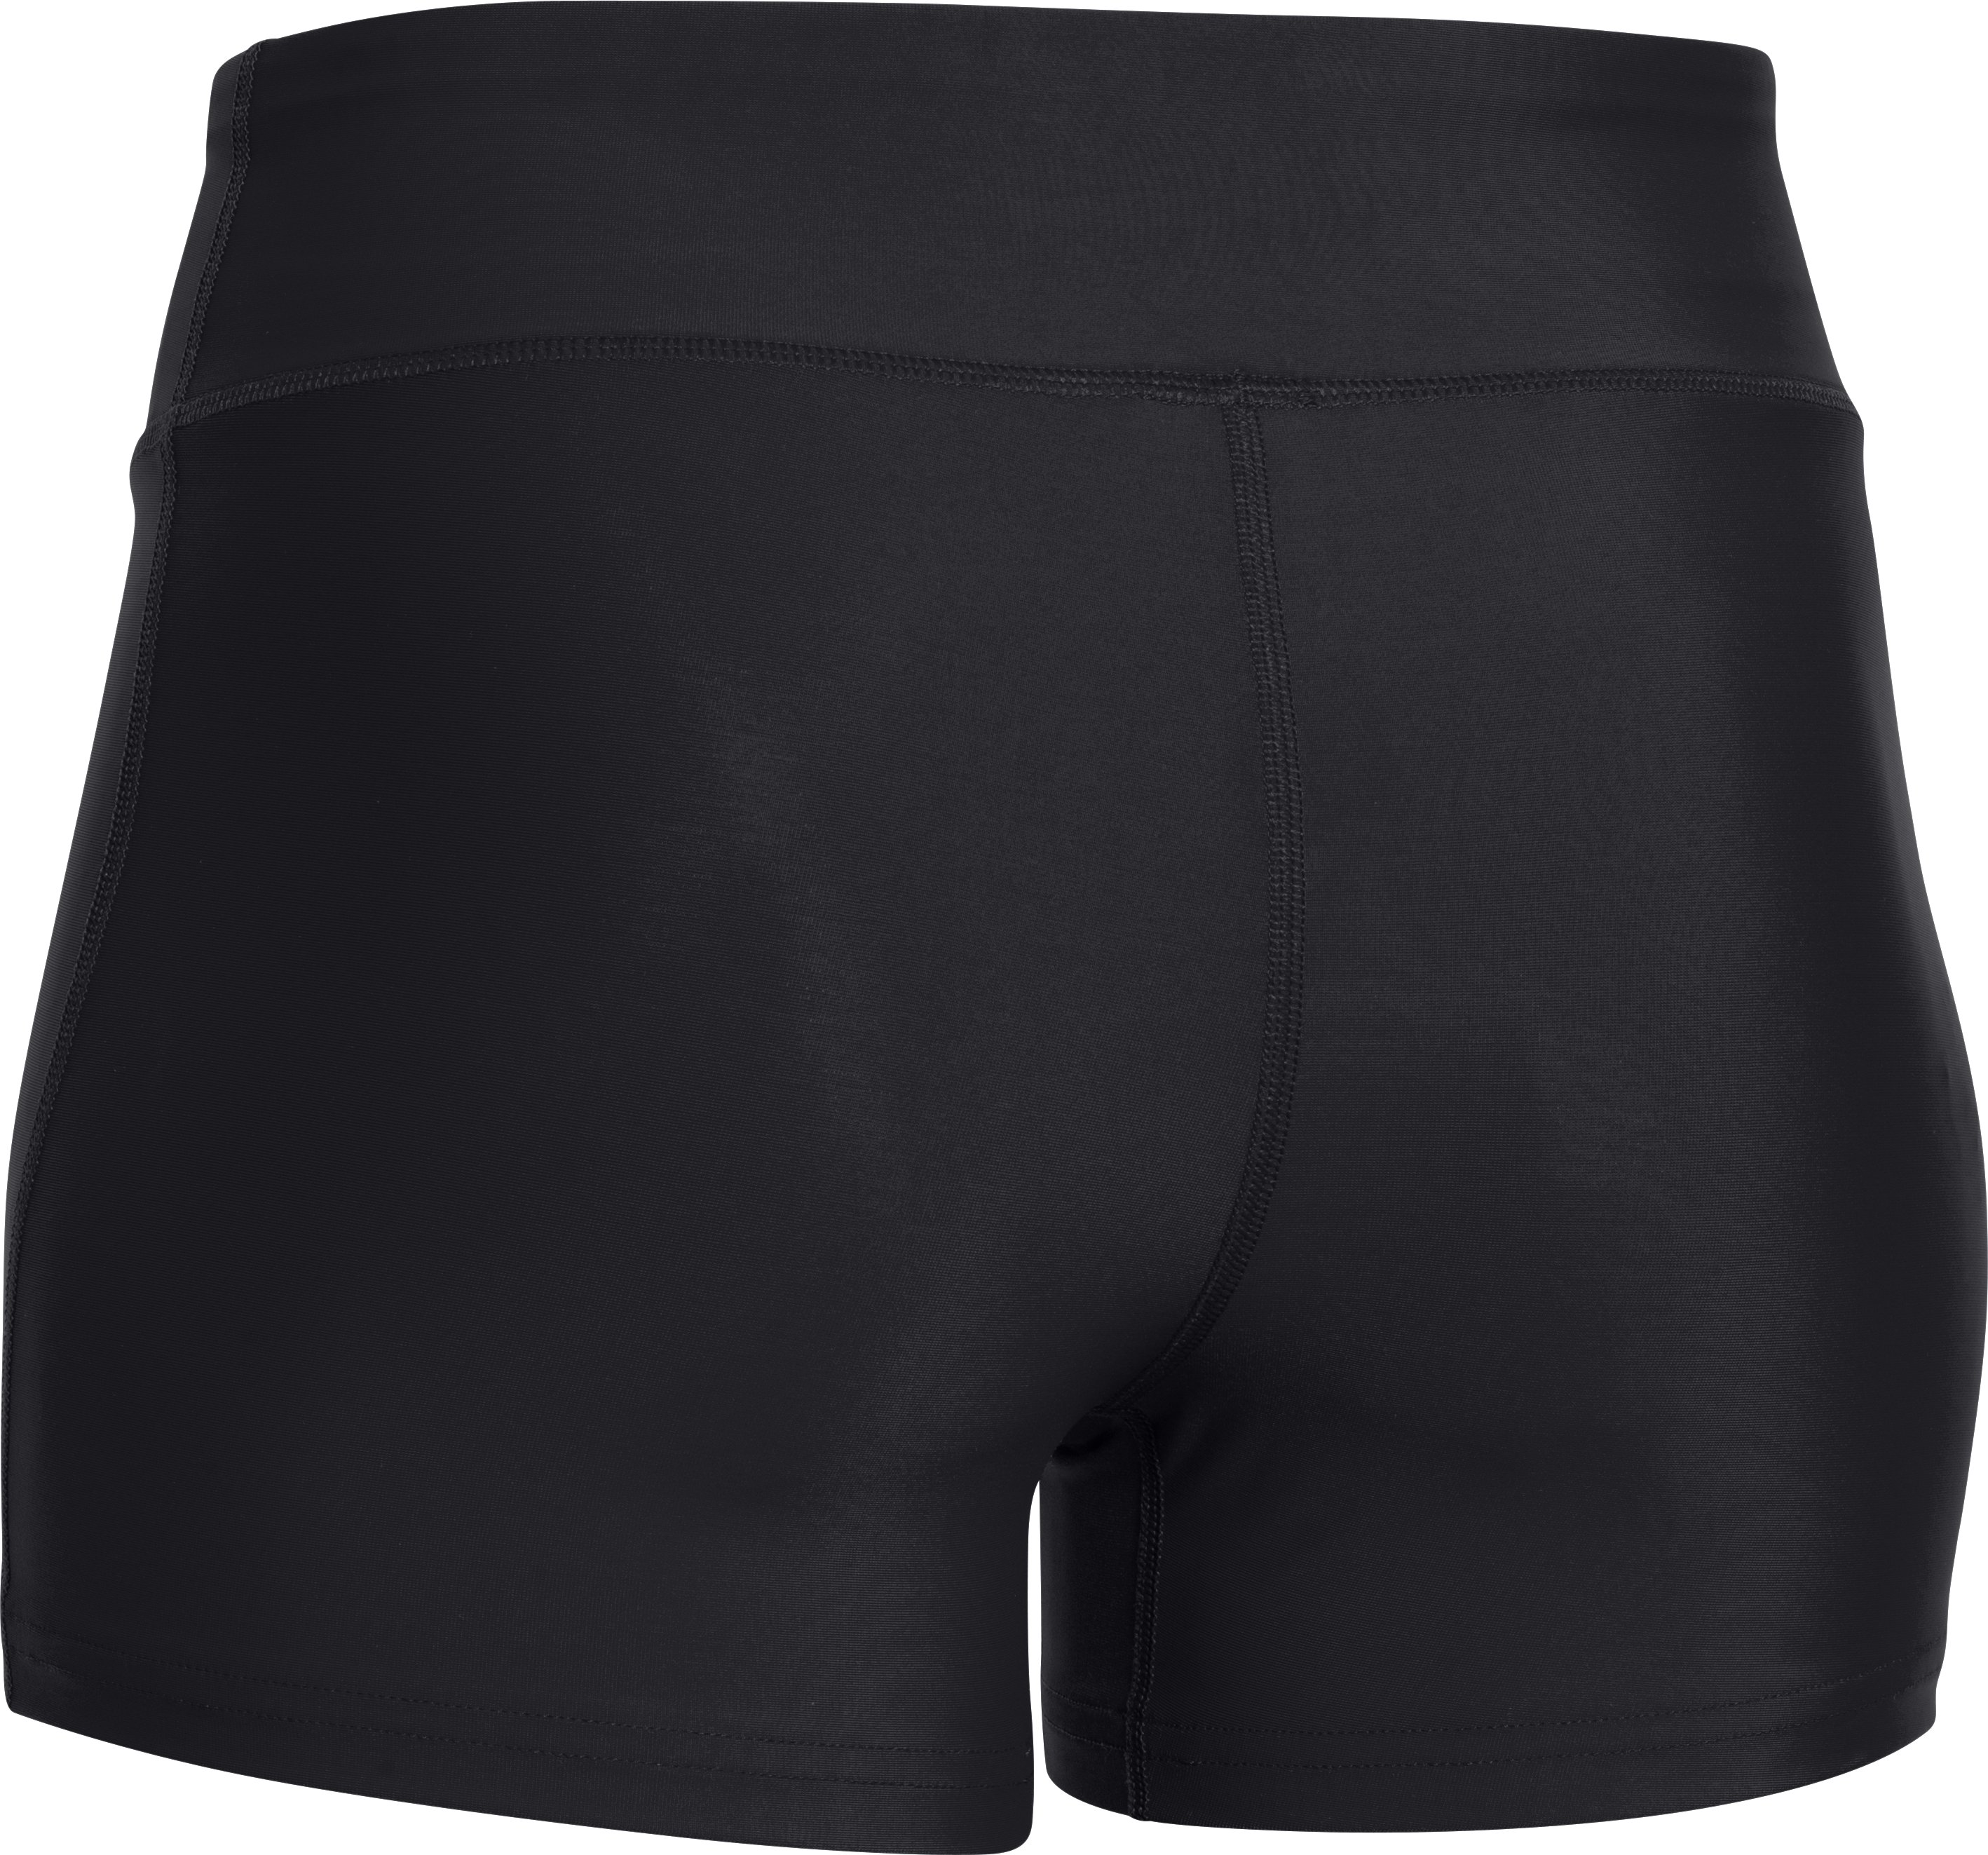 "Women's UA On The Court 3"" Shorts, Black ,"